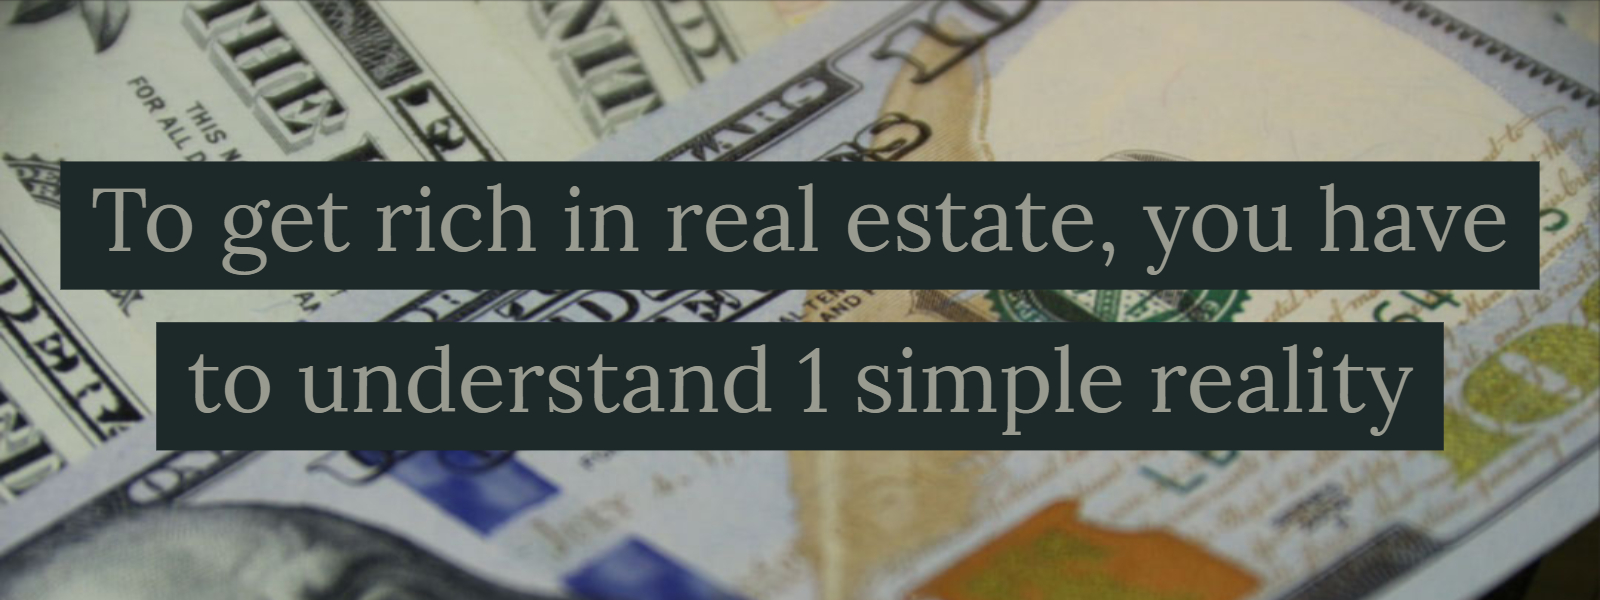 """To get rich in real estate, you have to understand 1 simple reality"" No."